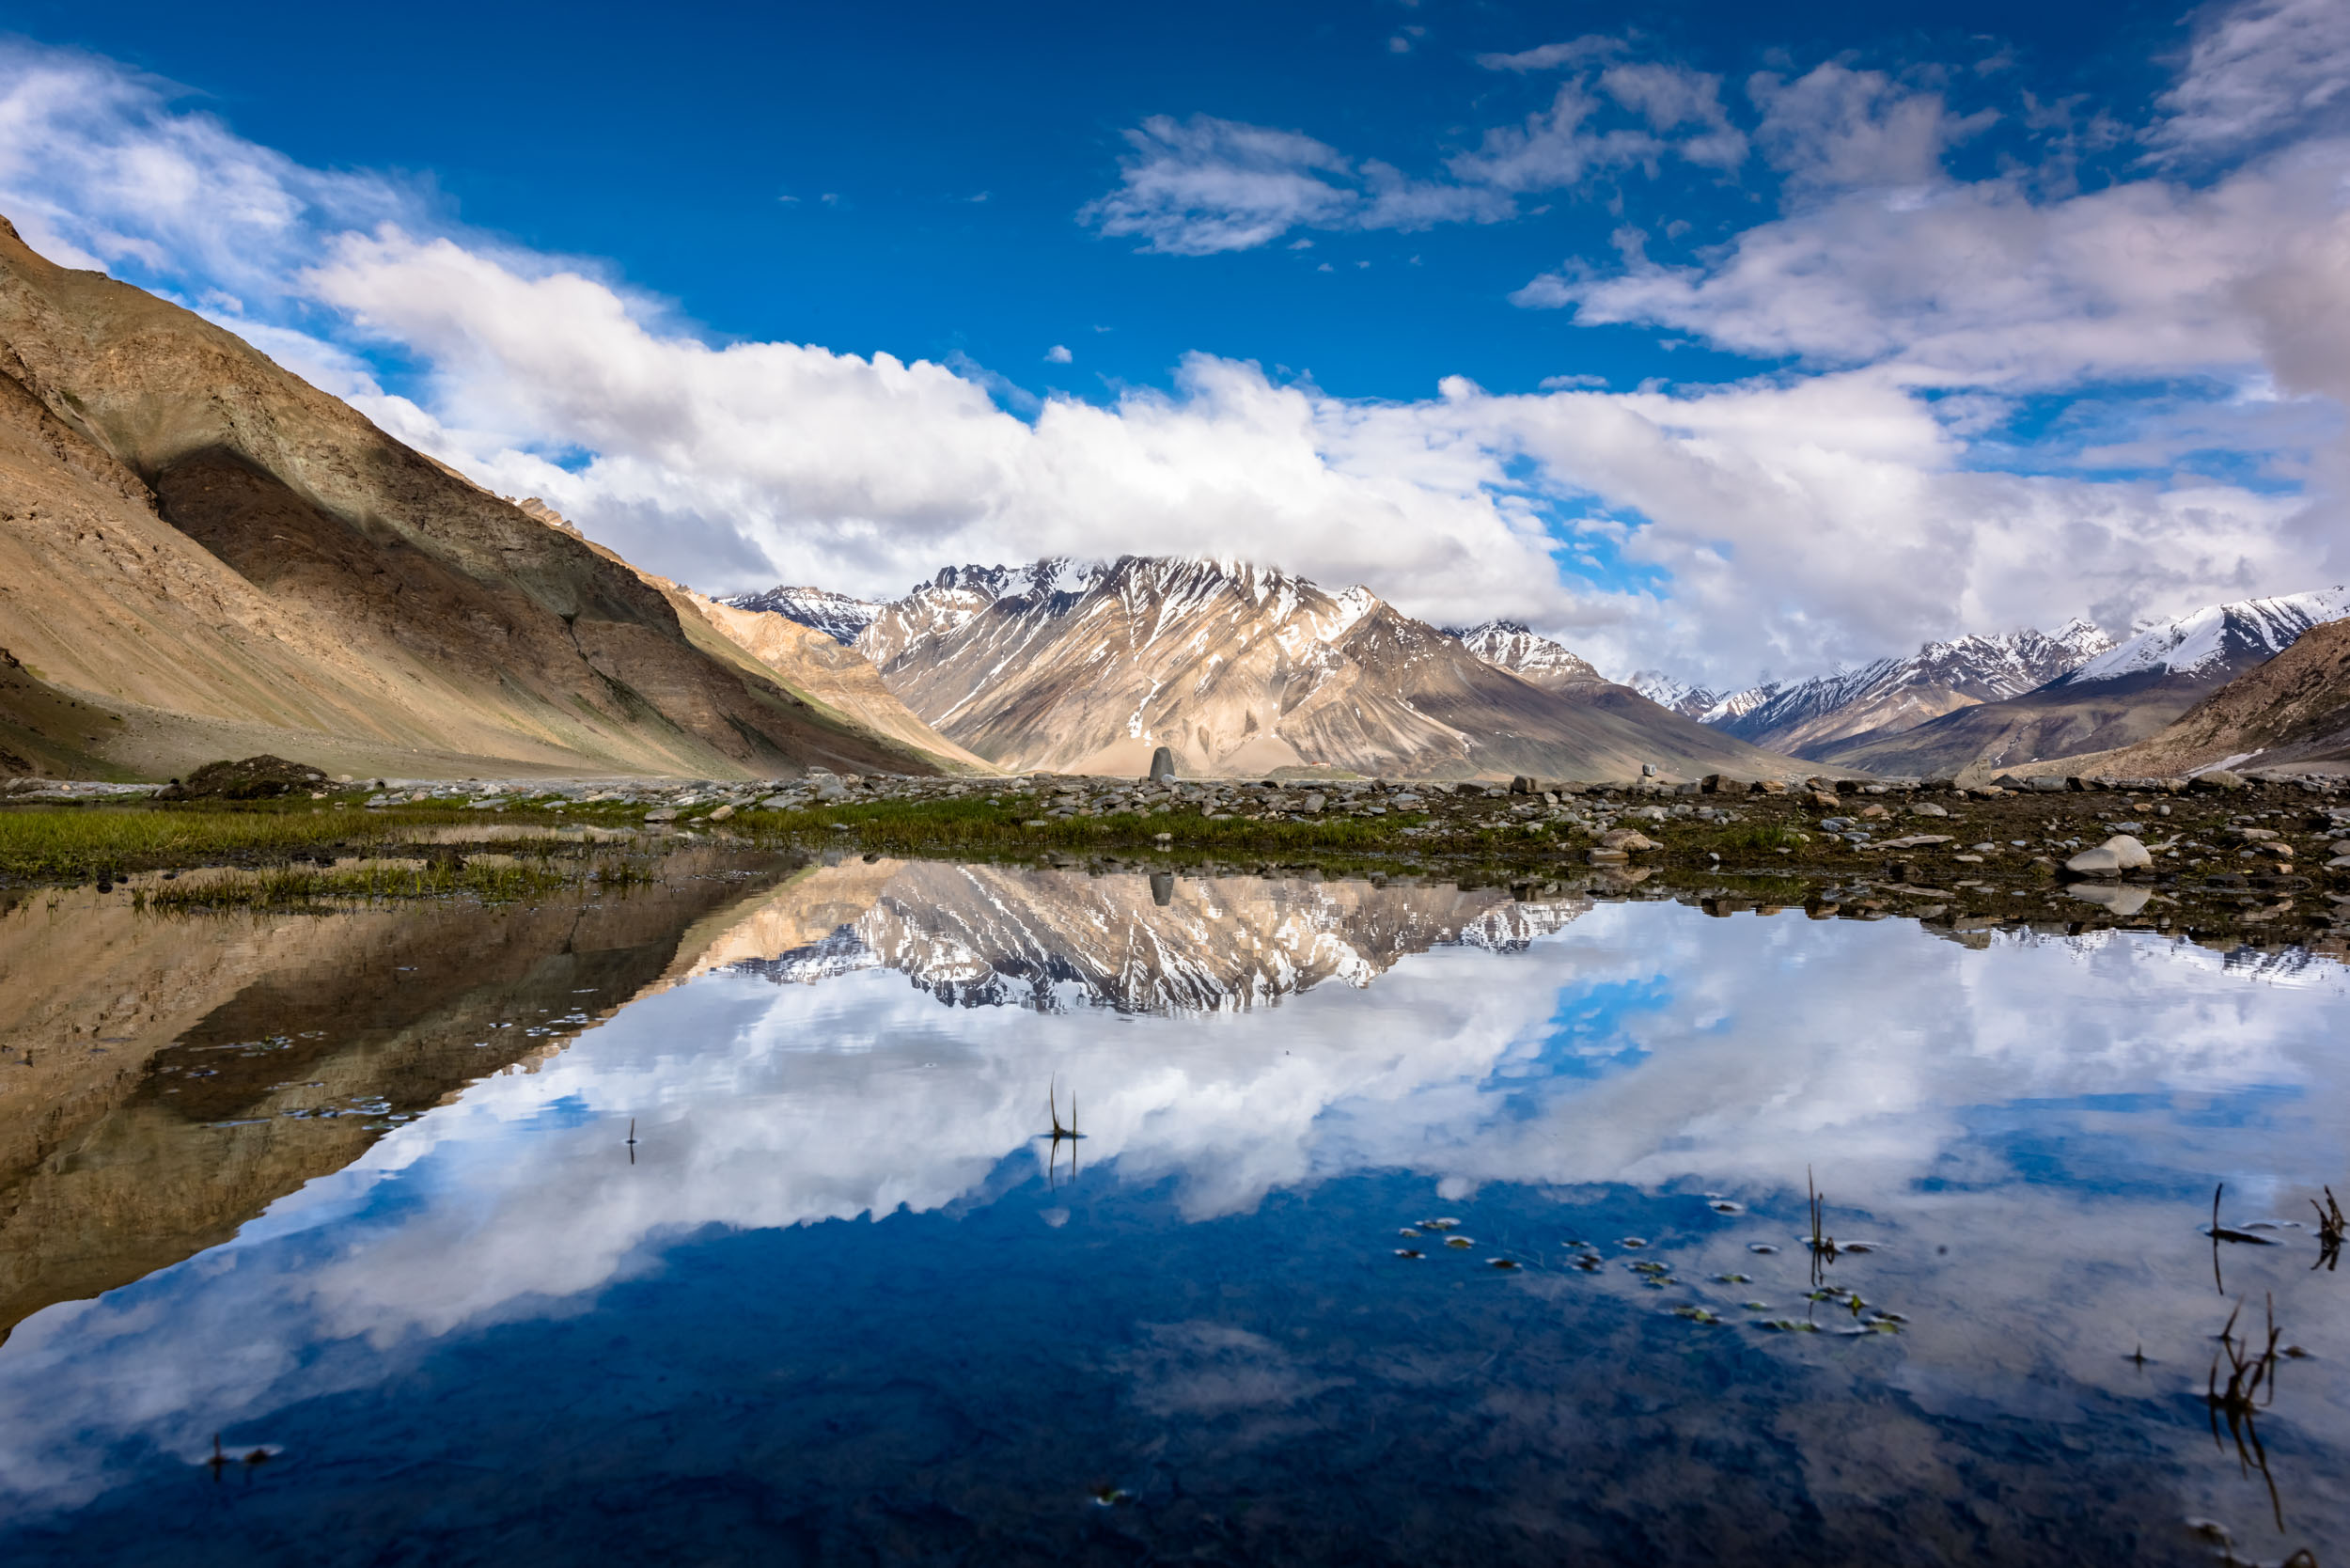 Reflections in Puddle at Rangdum